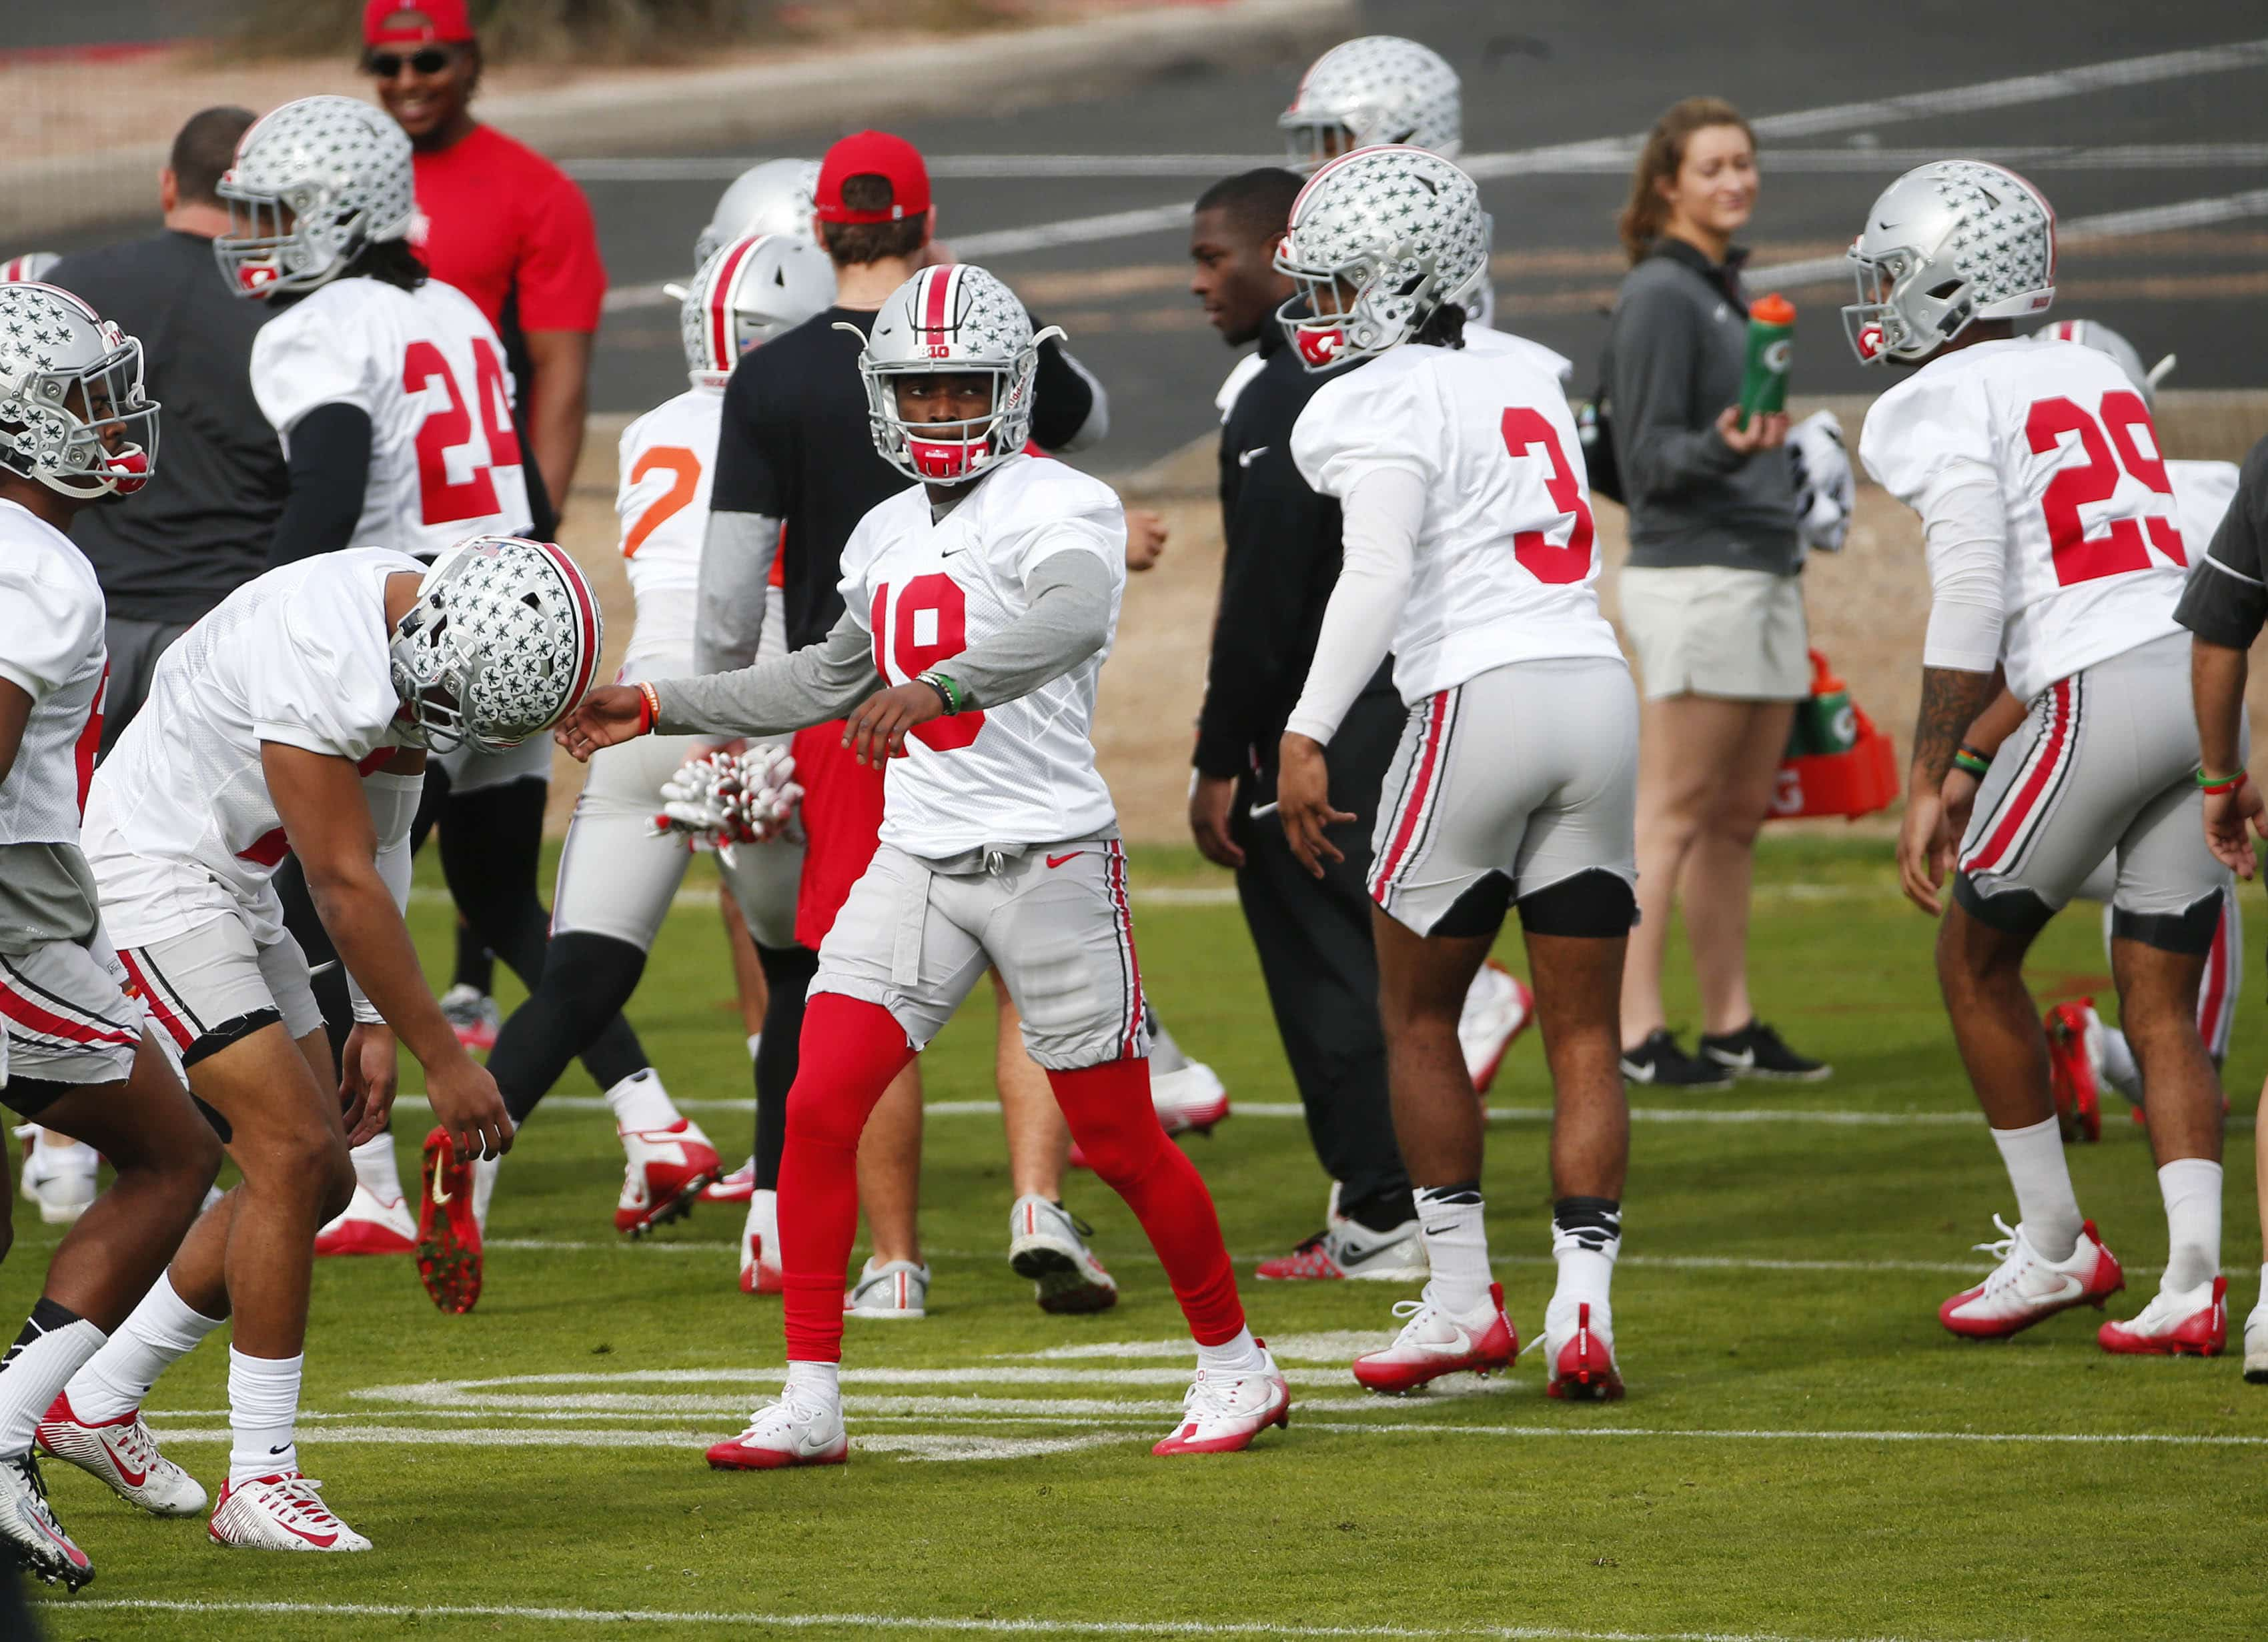 IU Notebook: What will Wilson's offense look like at Ohio State?